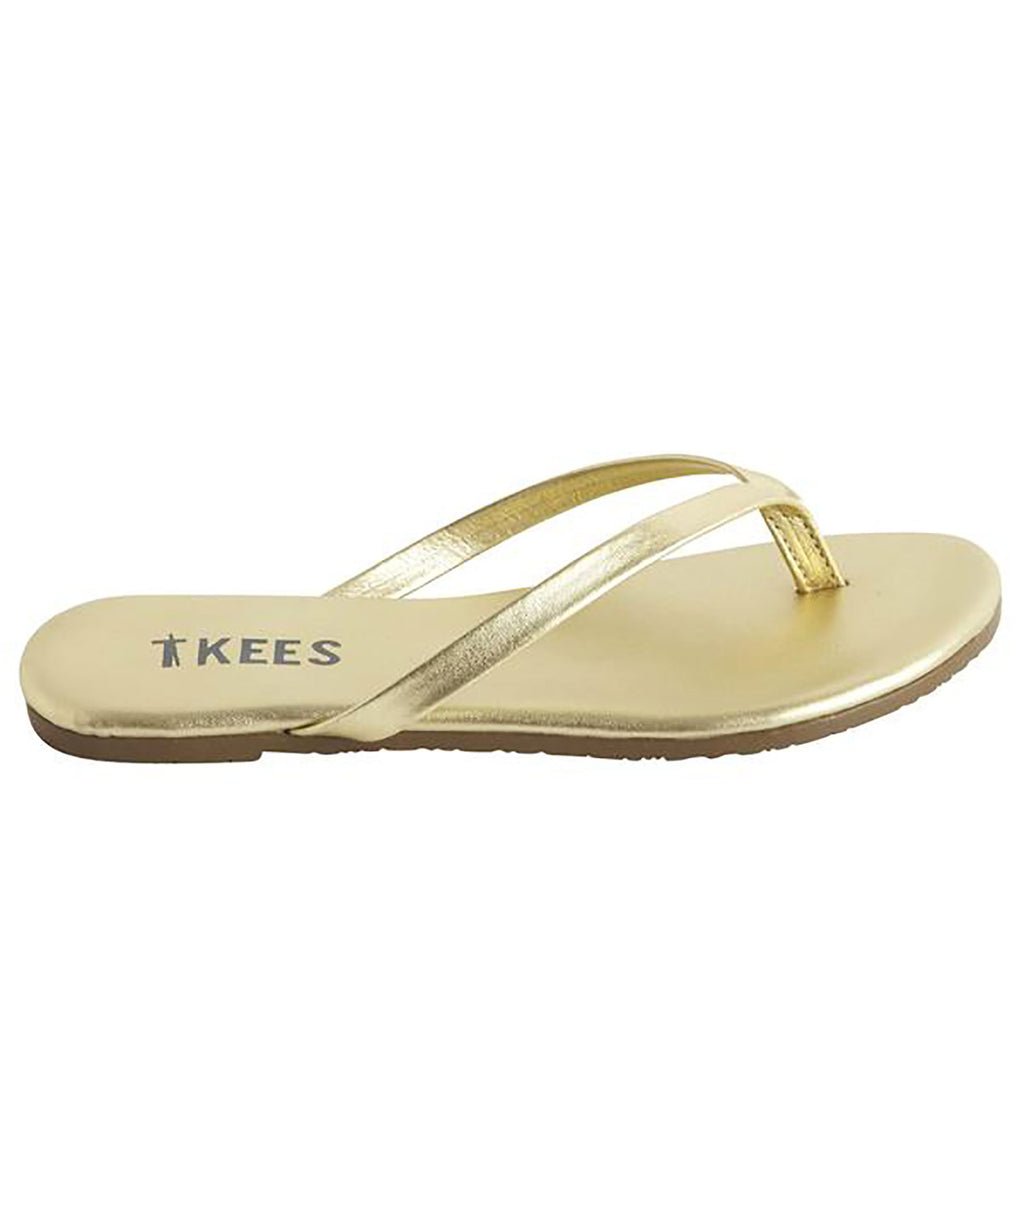 Tkees Girls Gold Blink Flip Flops - Frankie's on the Park